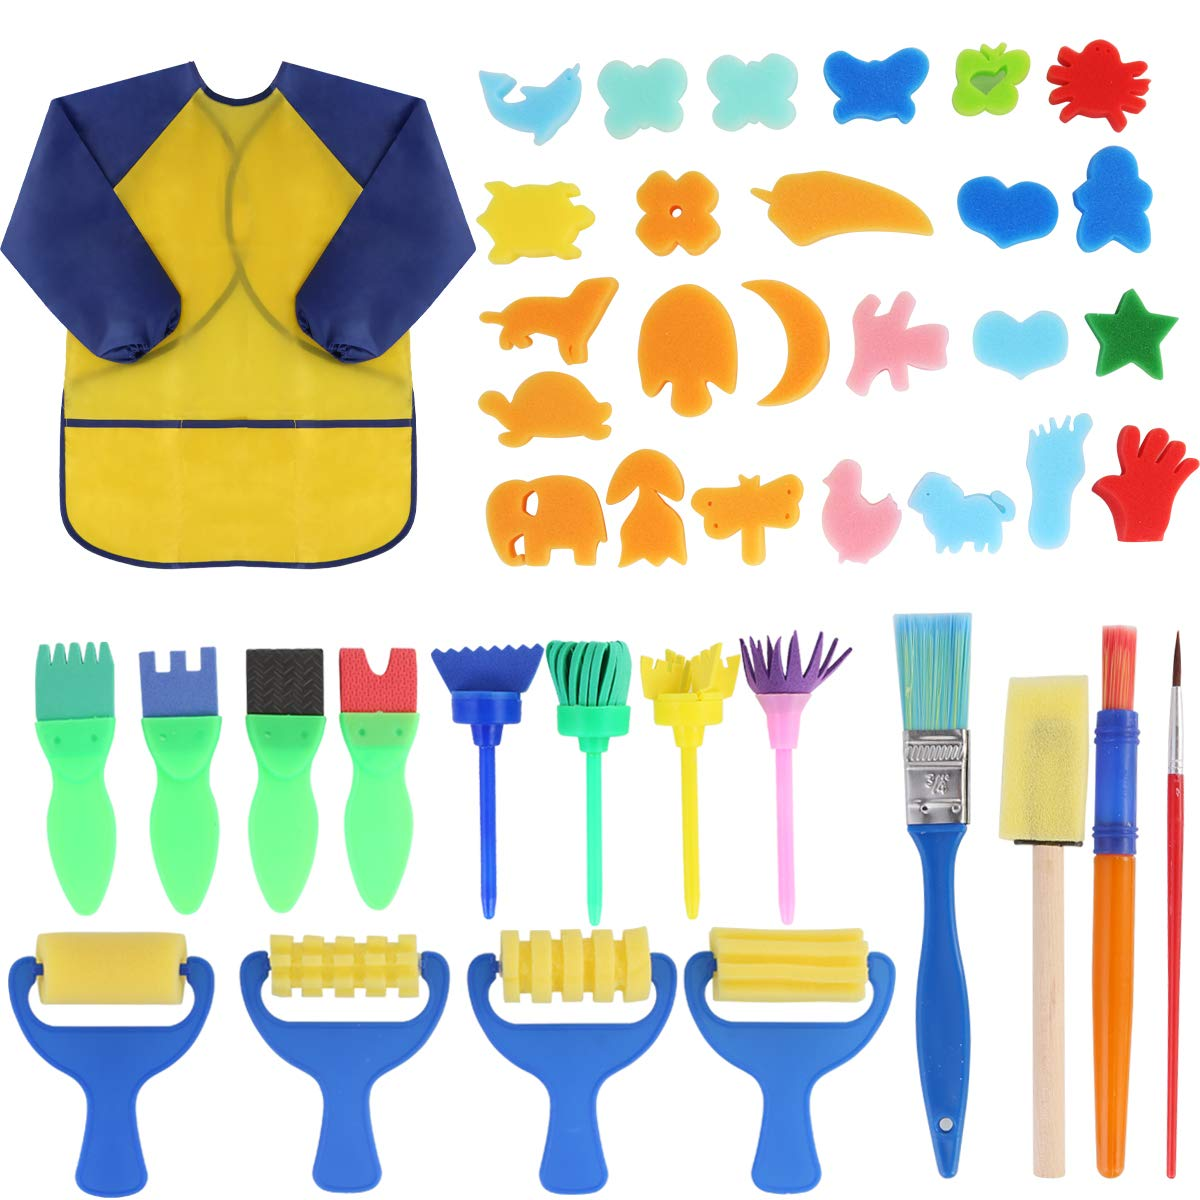 Early Learning Kids Paint Set,42pcs Sponge Painting Brushes Kit Sponge Drawing Paint Tools for Toddler with Painting Smock Apron by Yinuoday